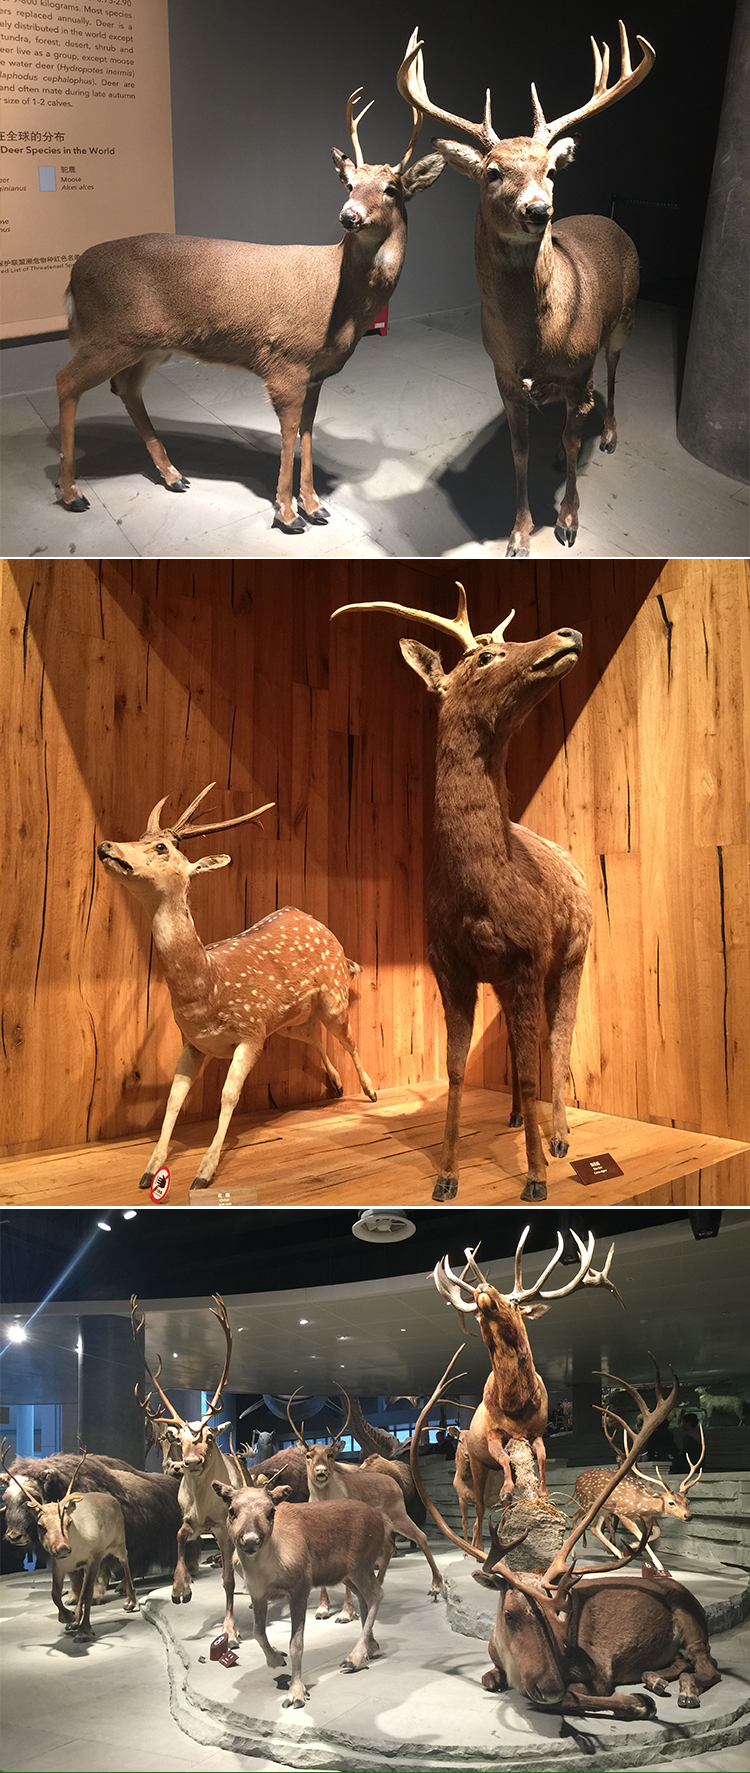 KANO-068 Jungle Lifelike Animatronic Deer